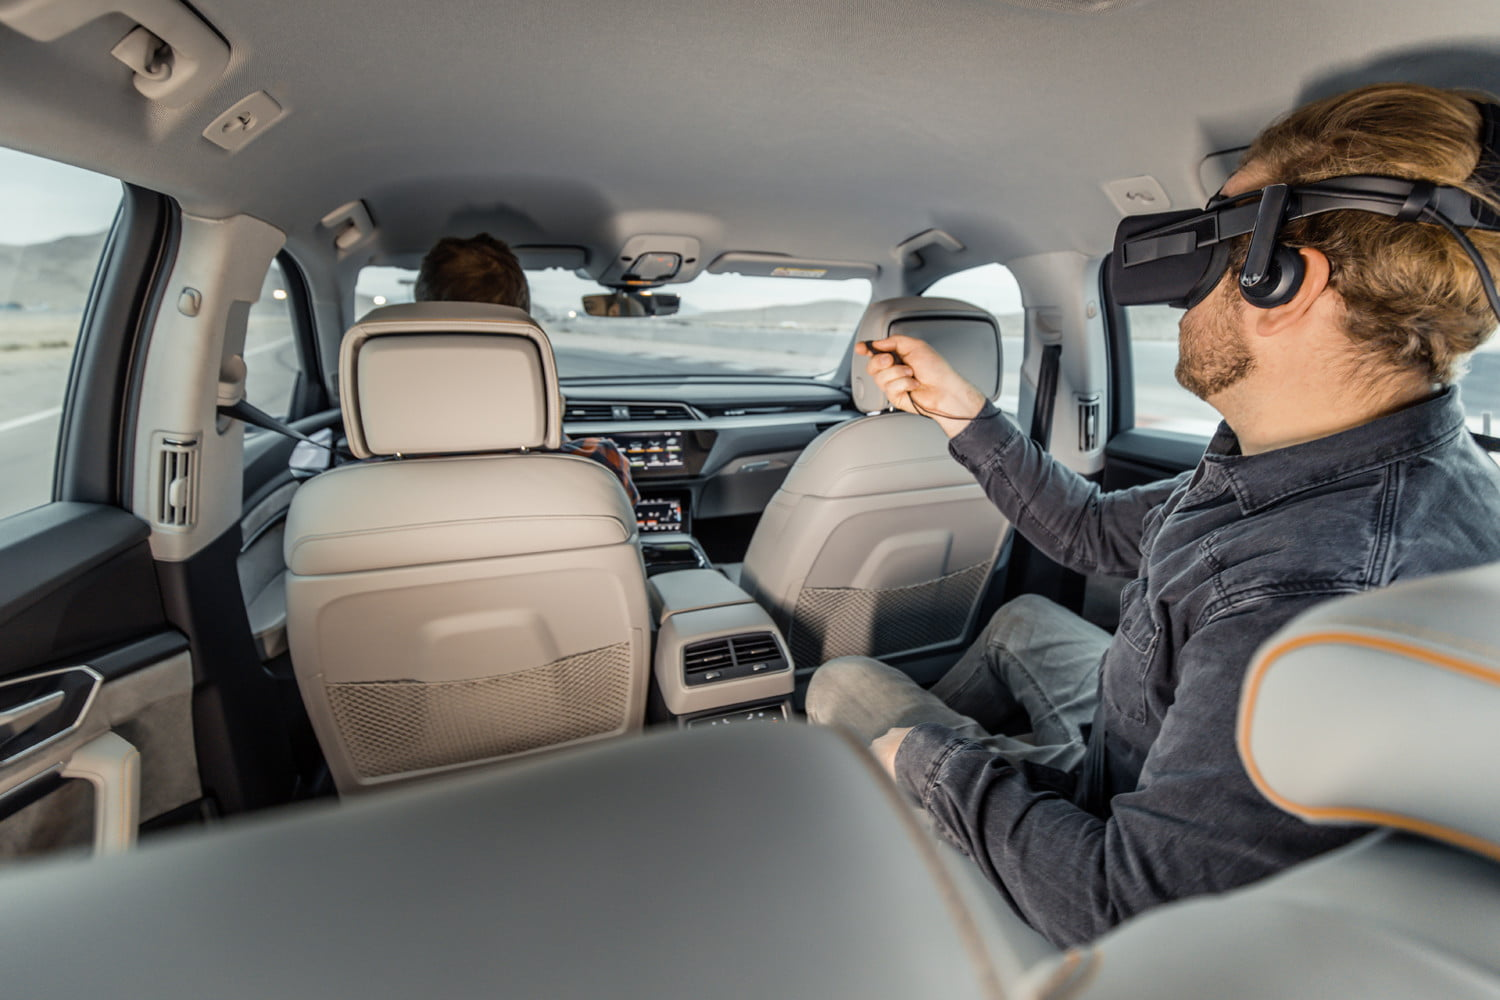 Audi's VR-based in-car entertainment turns your car into a spaceship